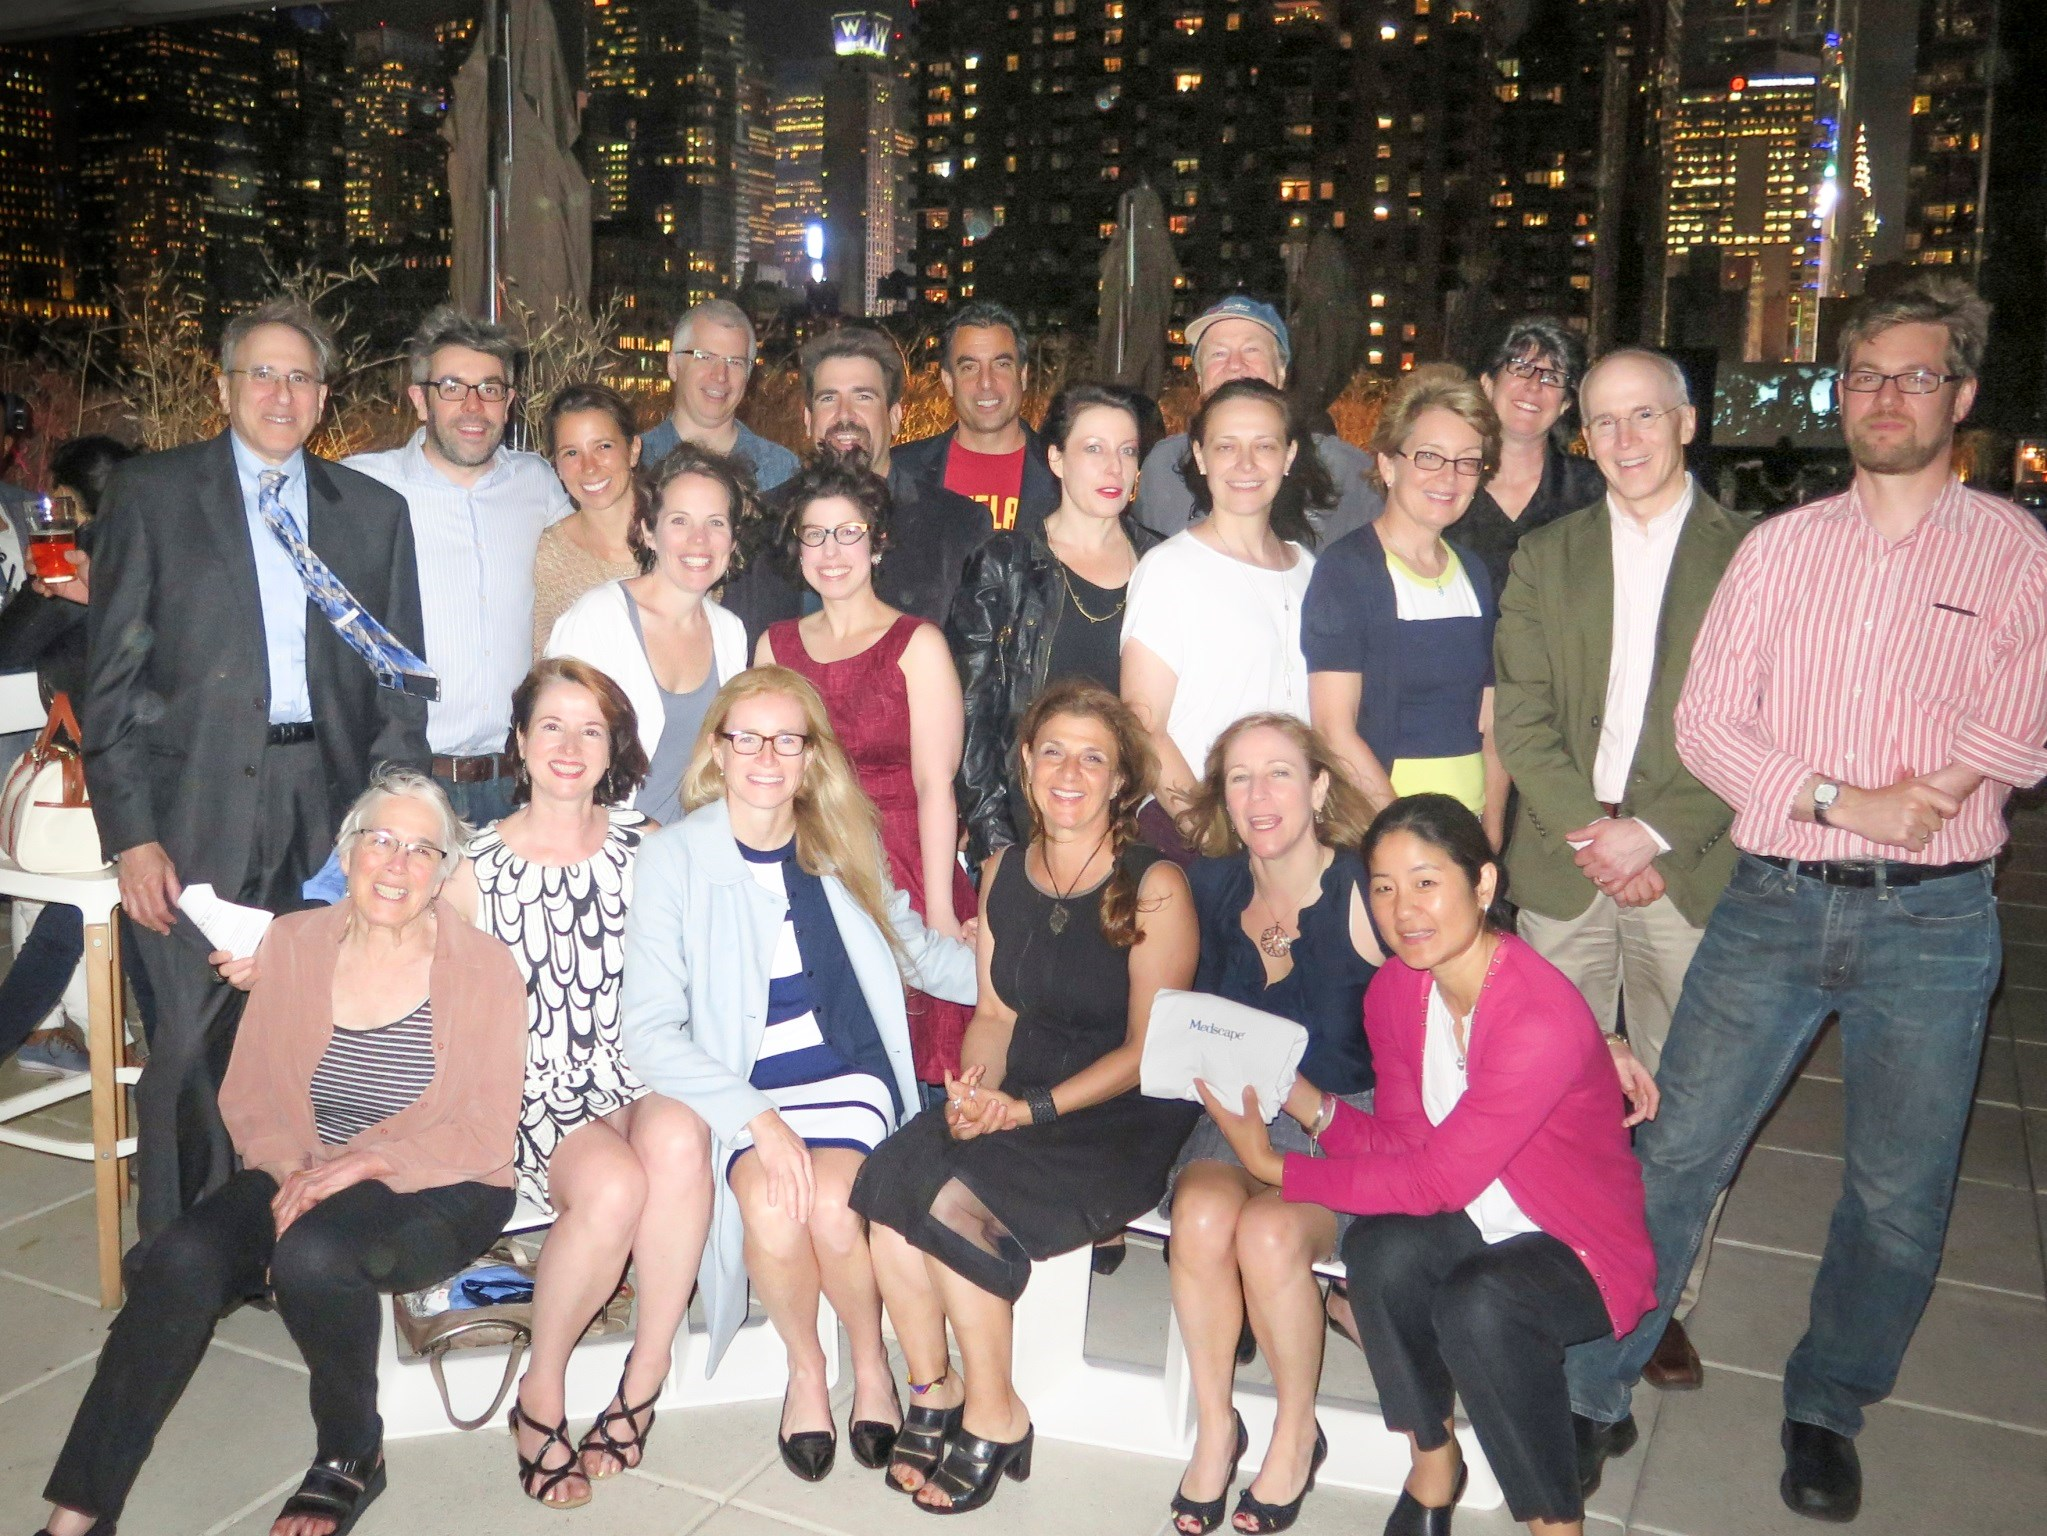 Medscape's 20th anniversary